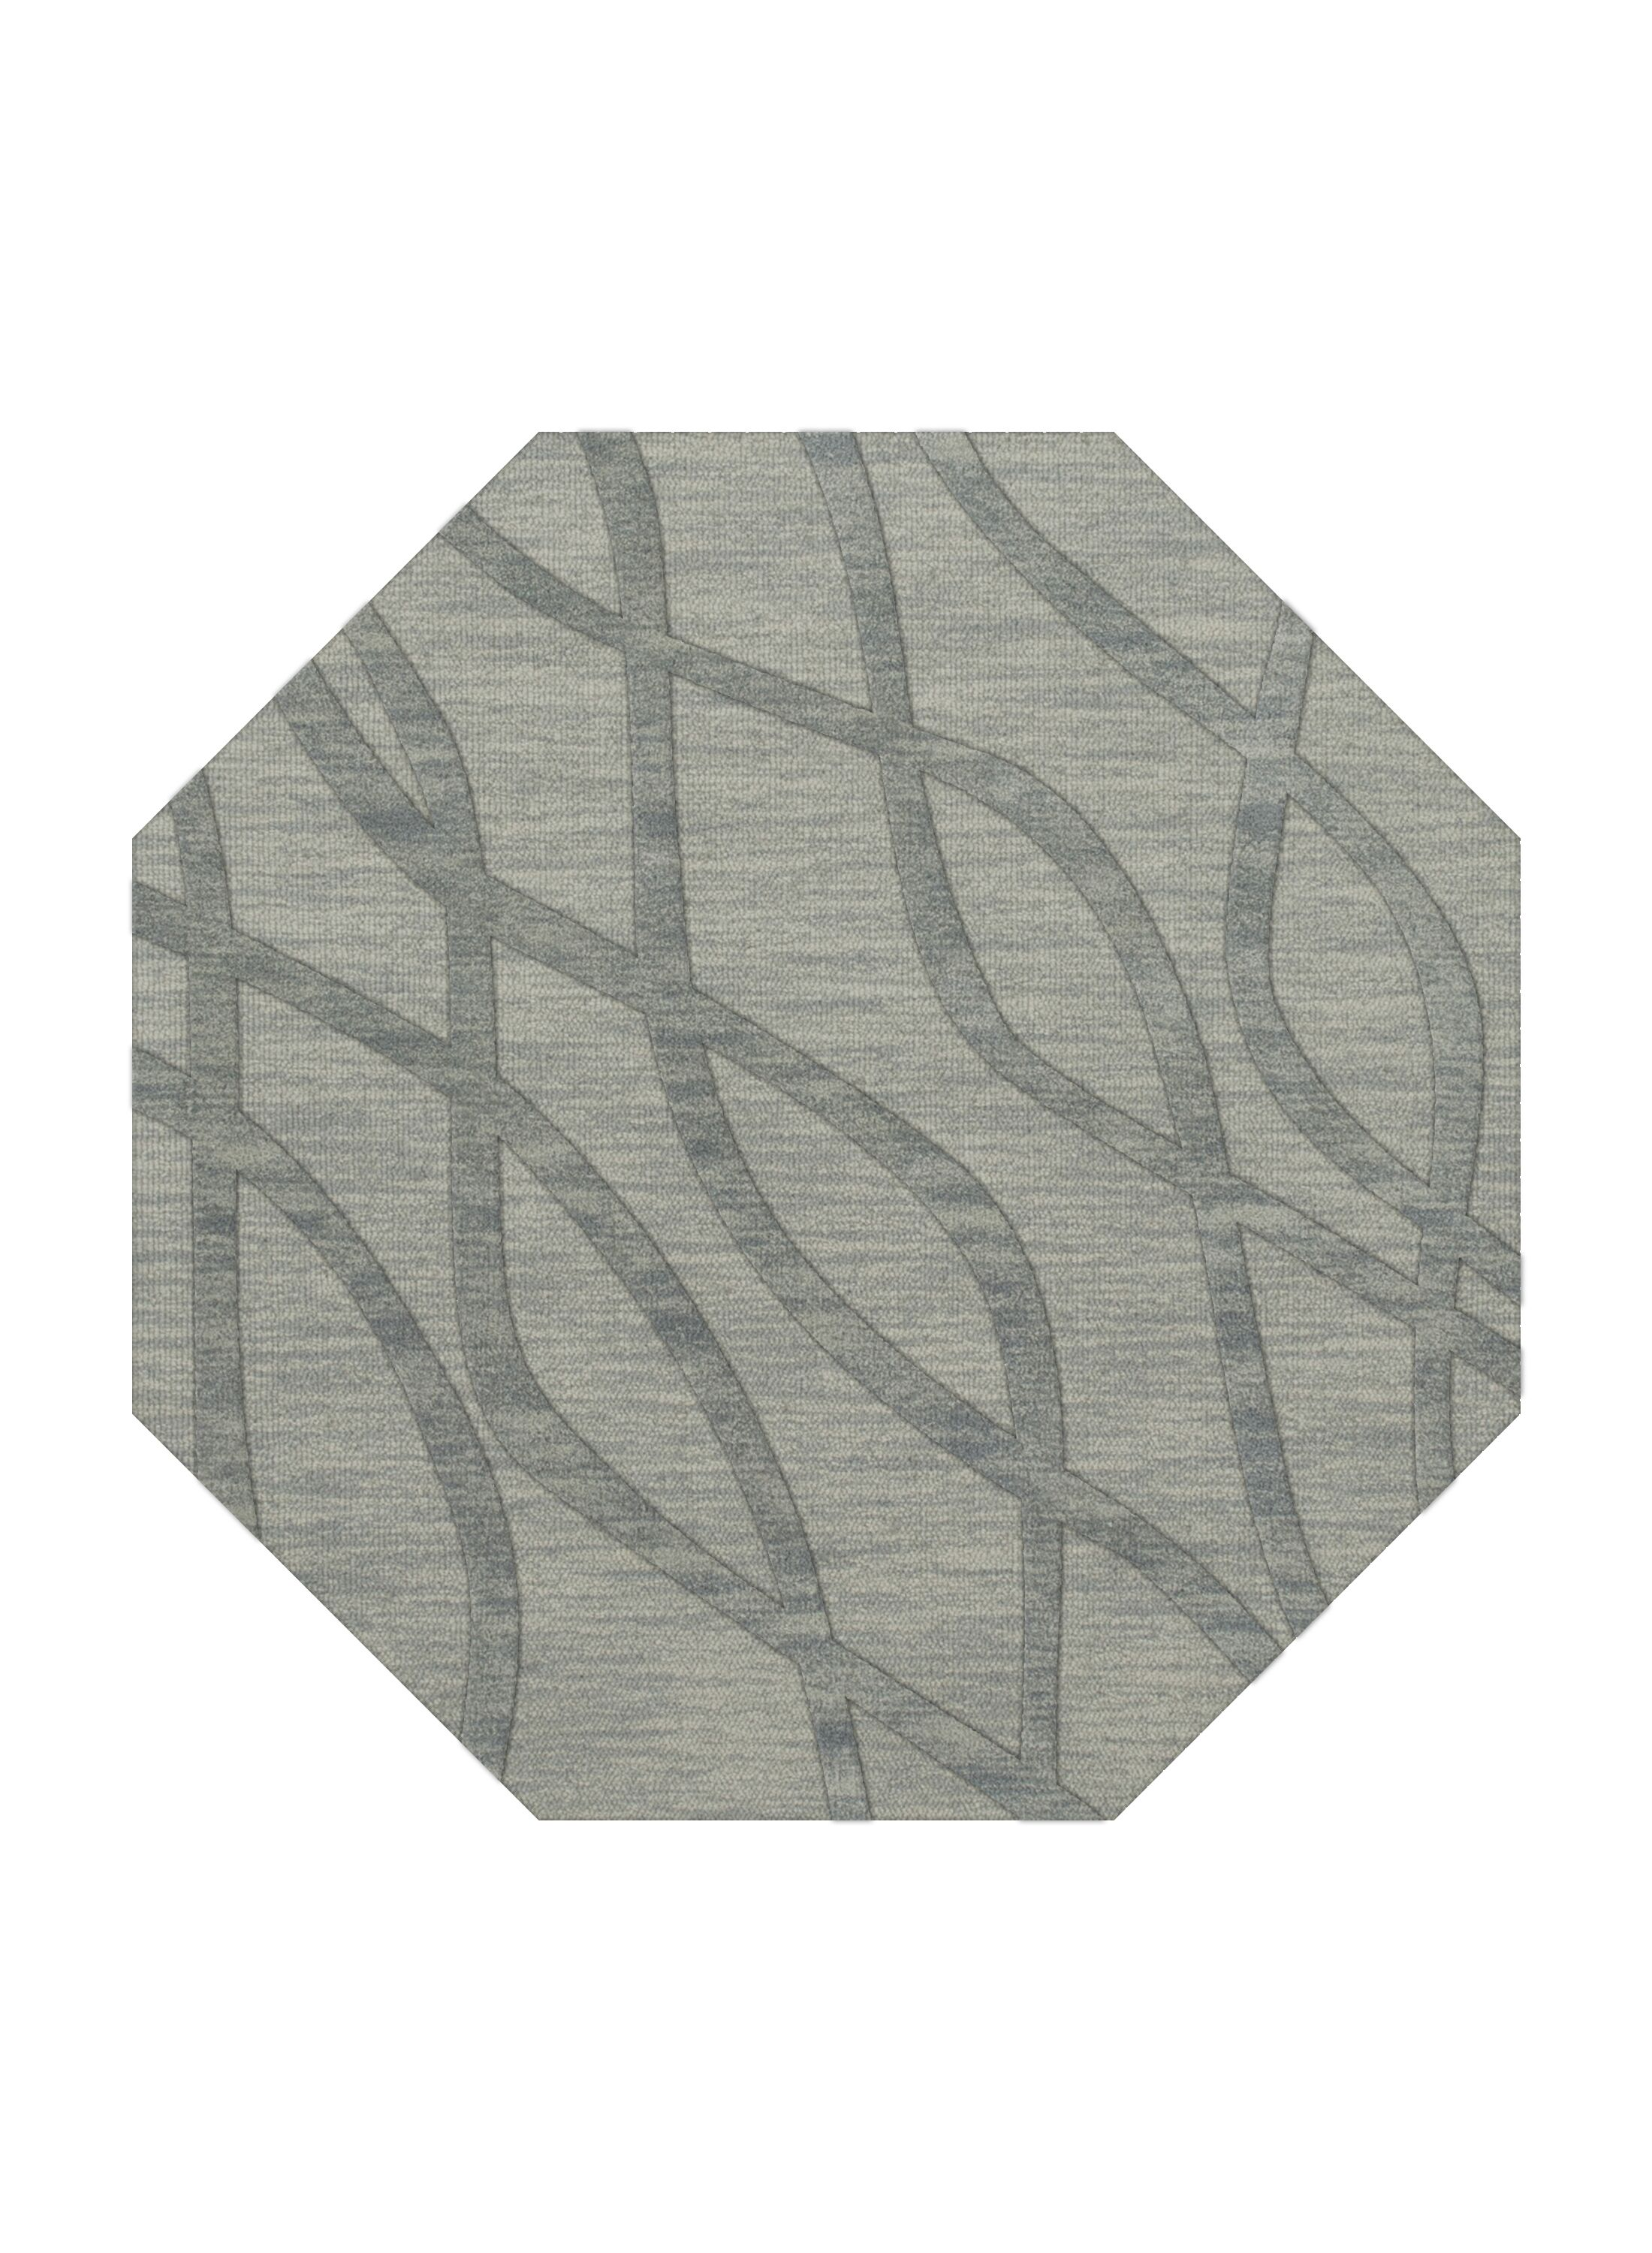 Dover Tufted Wool Sea Glass Area Rug Rug Size: Octagon 12'